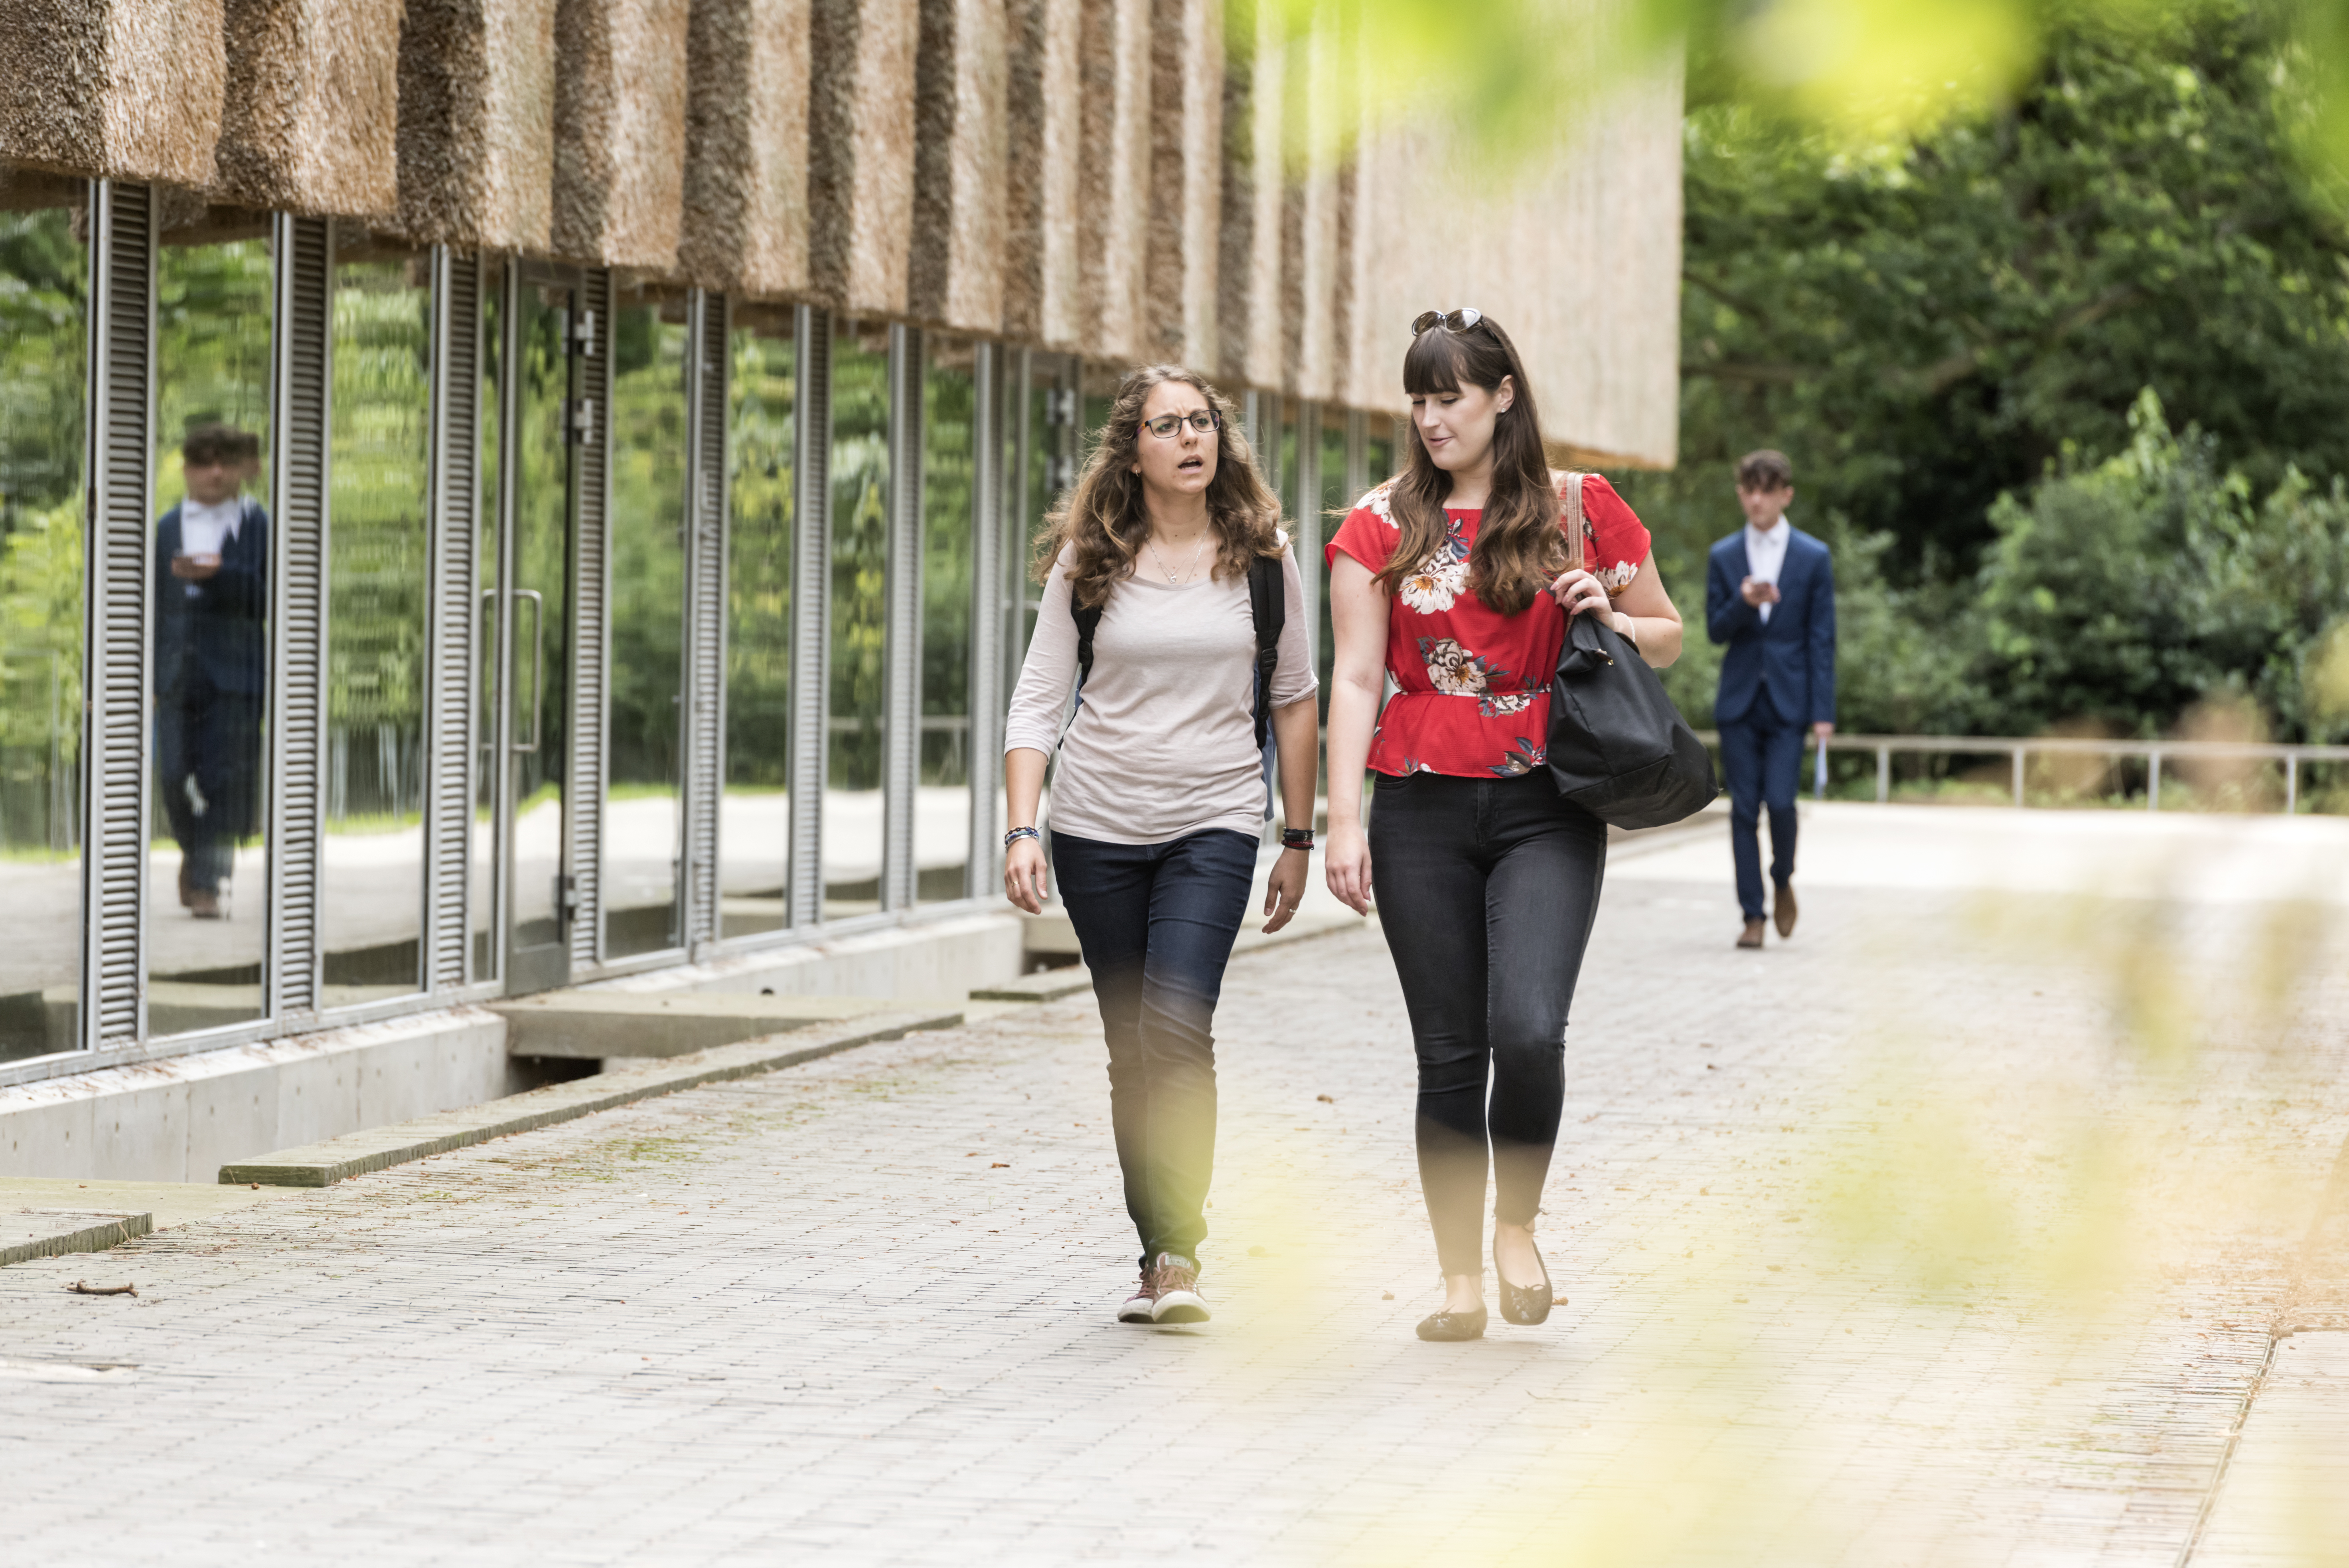 Students walking around university campus